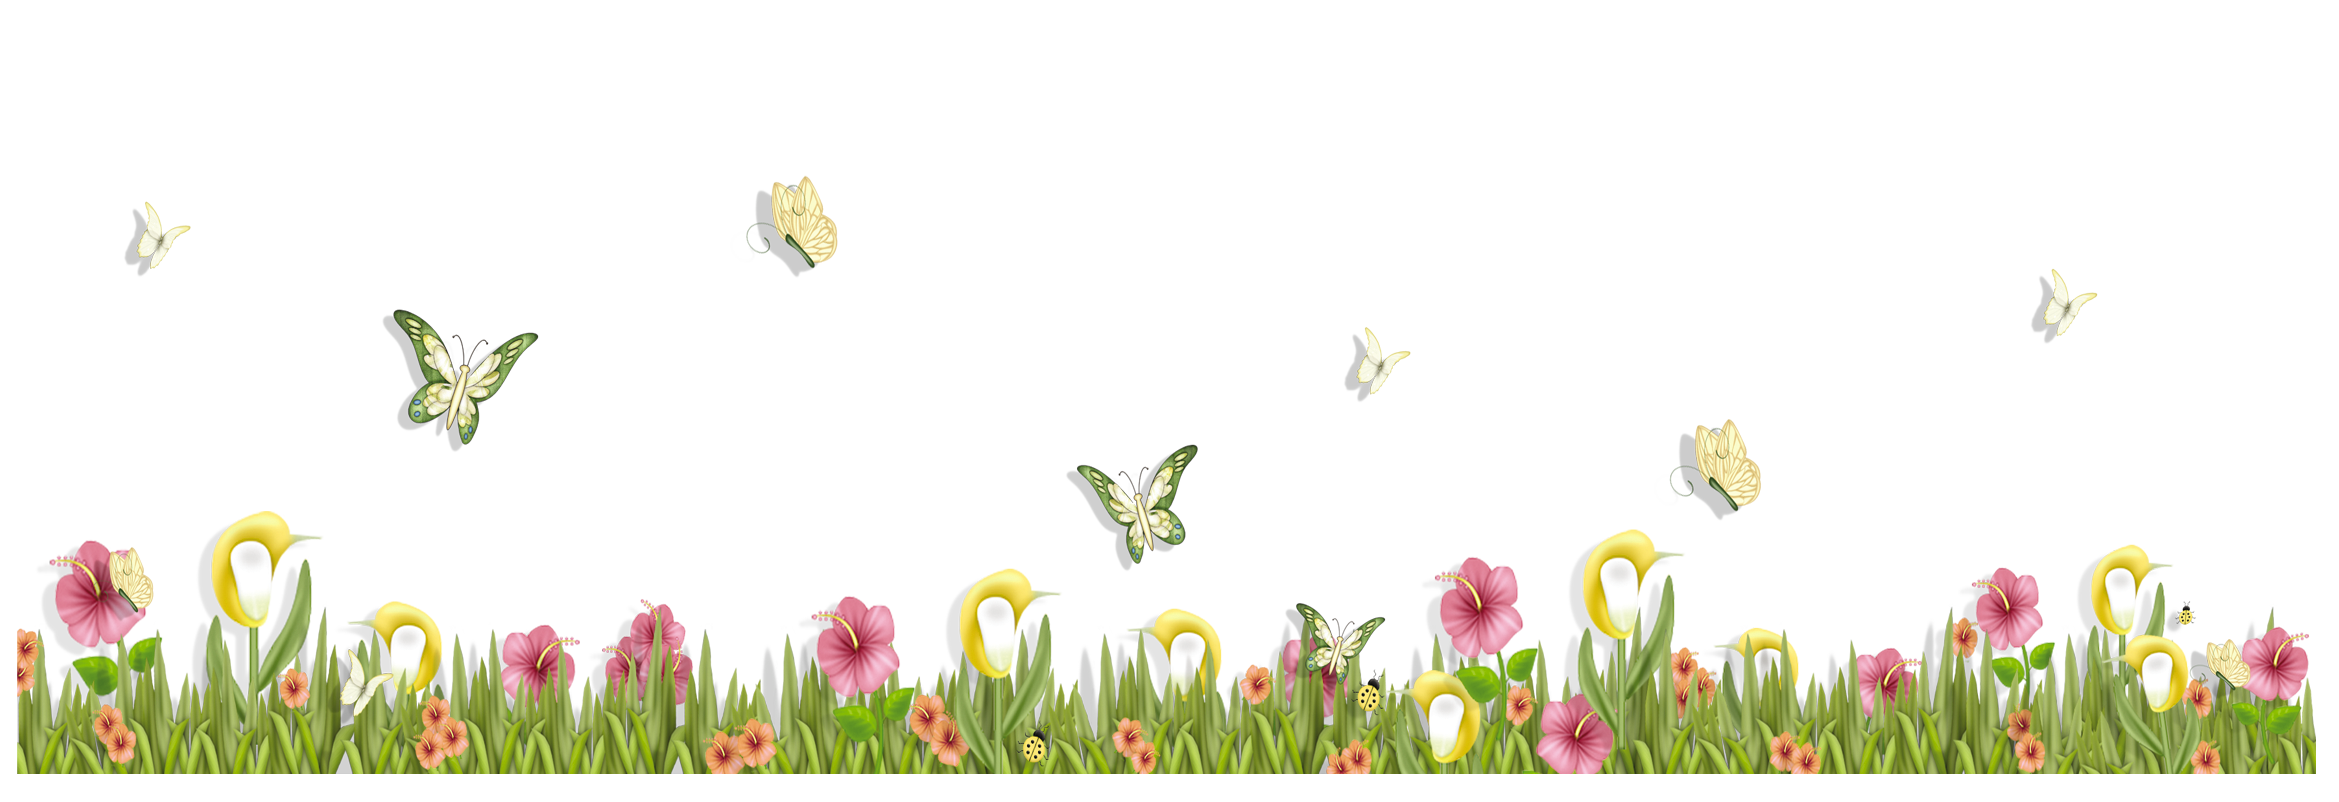 Grass flowers png. With butterflies and clipart